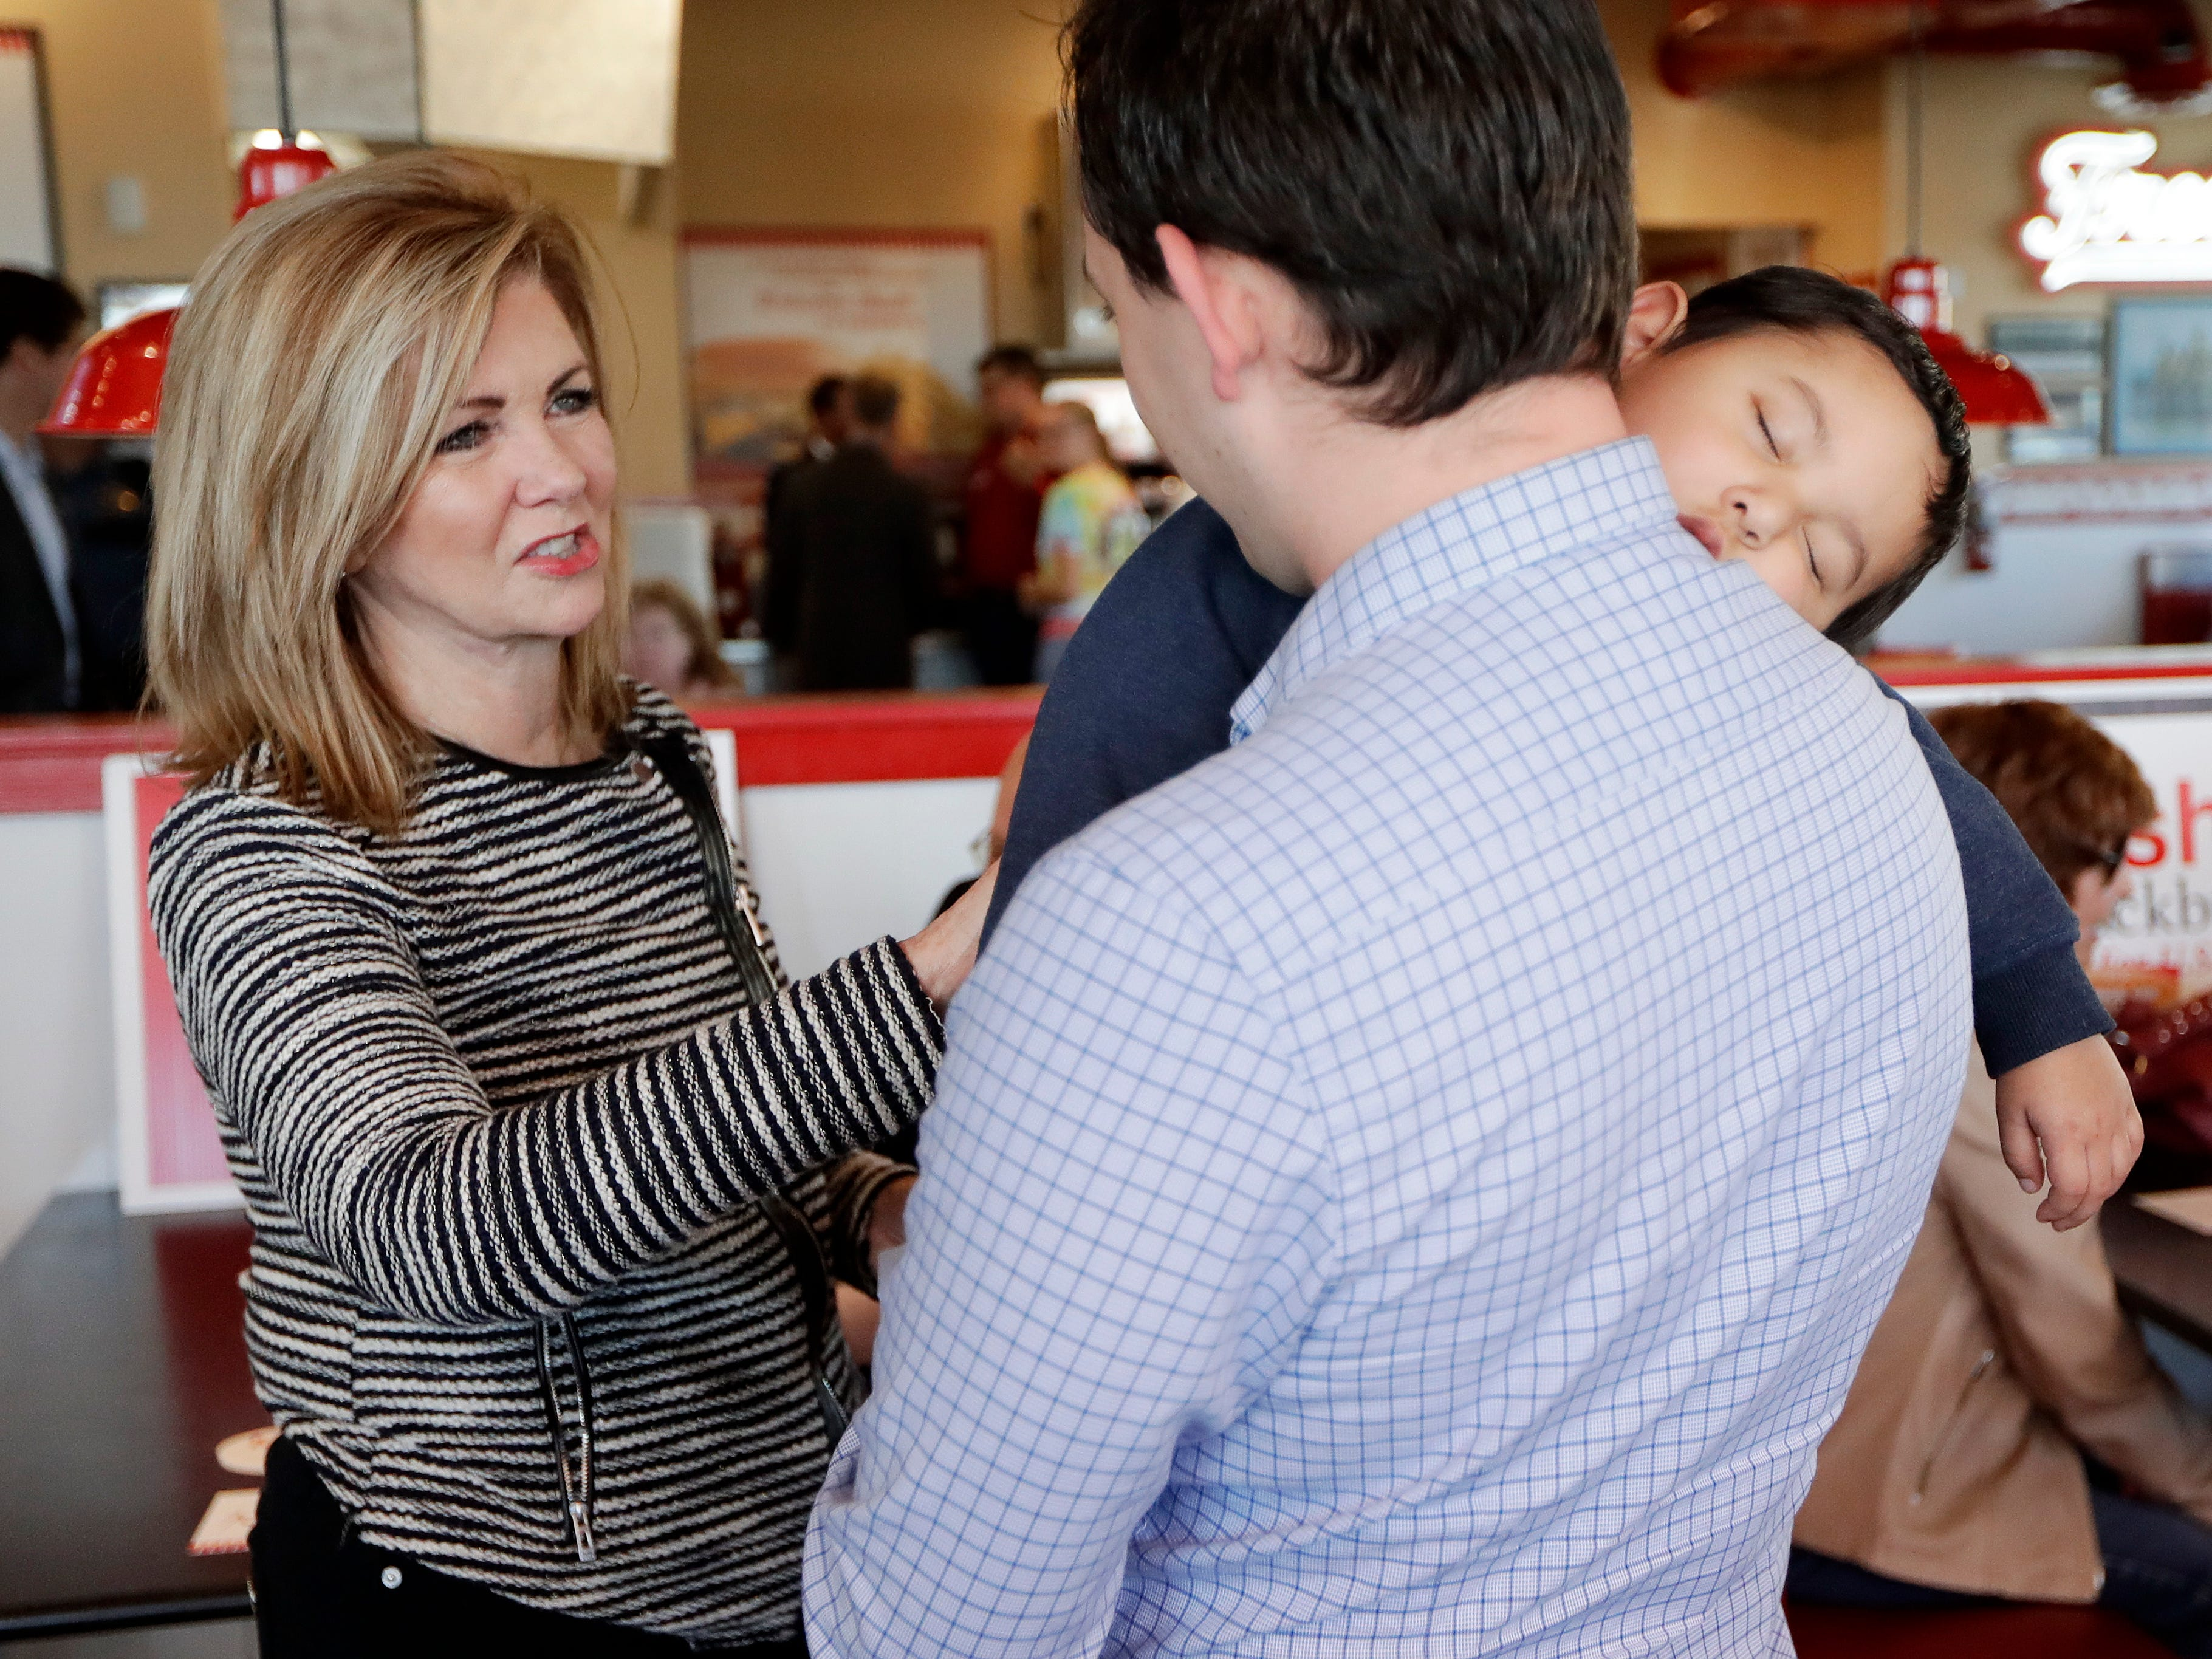 Rep. Marsha Blackburn, R-Tenn., campaigns at Freddy's Frozen Custard & Steakburgers and talks with David Frodin as his son, Noah, 2, naps Tuesday, Nov. 6, 2018, in Clarksville, Tenn. Blackburn is running against former Gov. Phil Bredesen for the U.S. Senate.